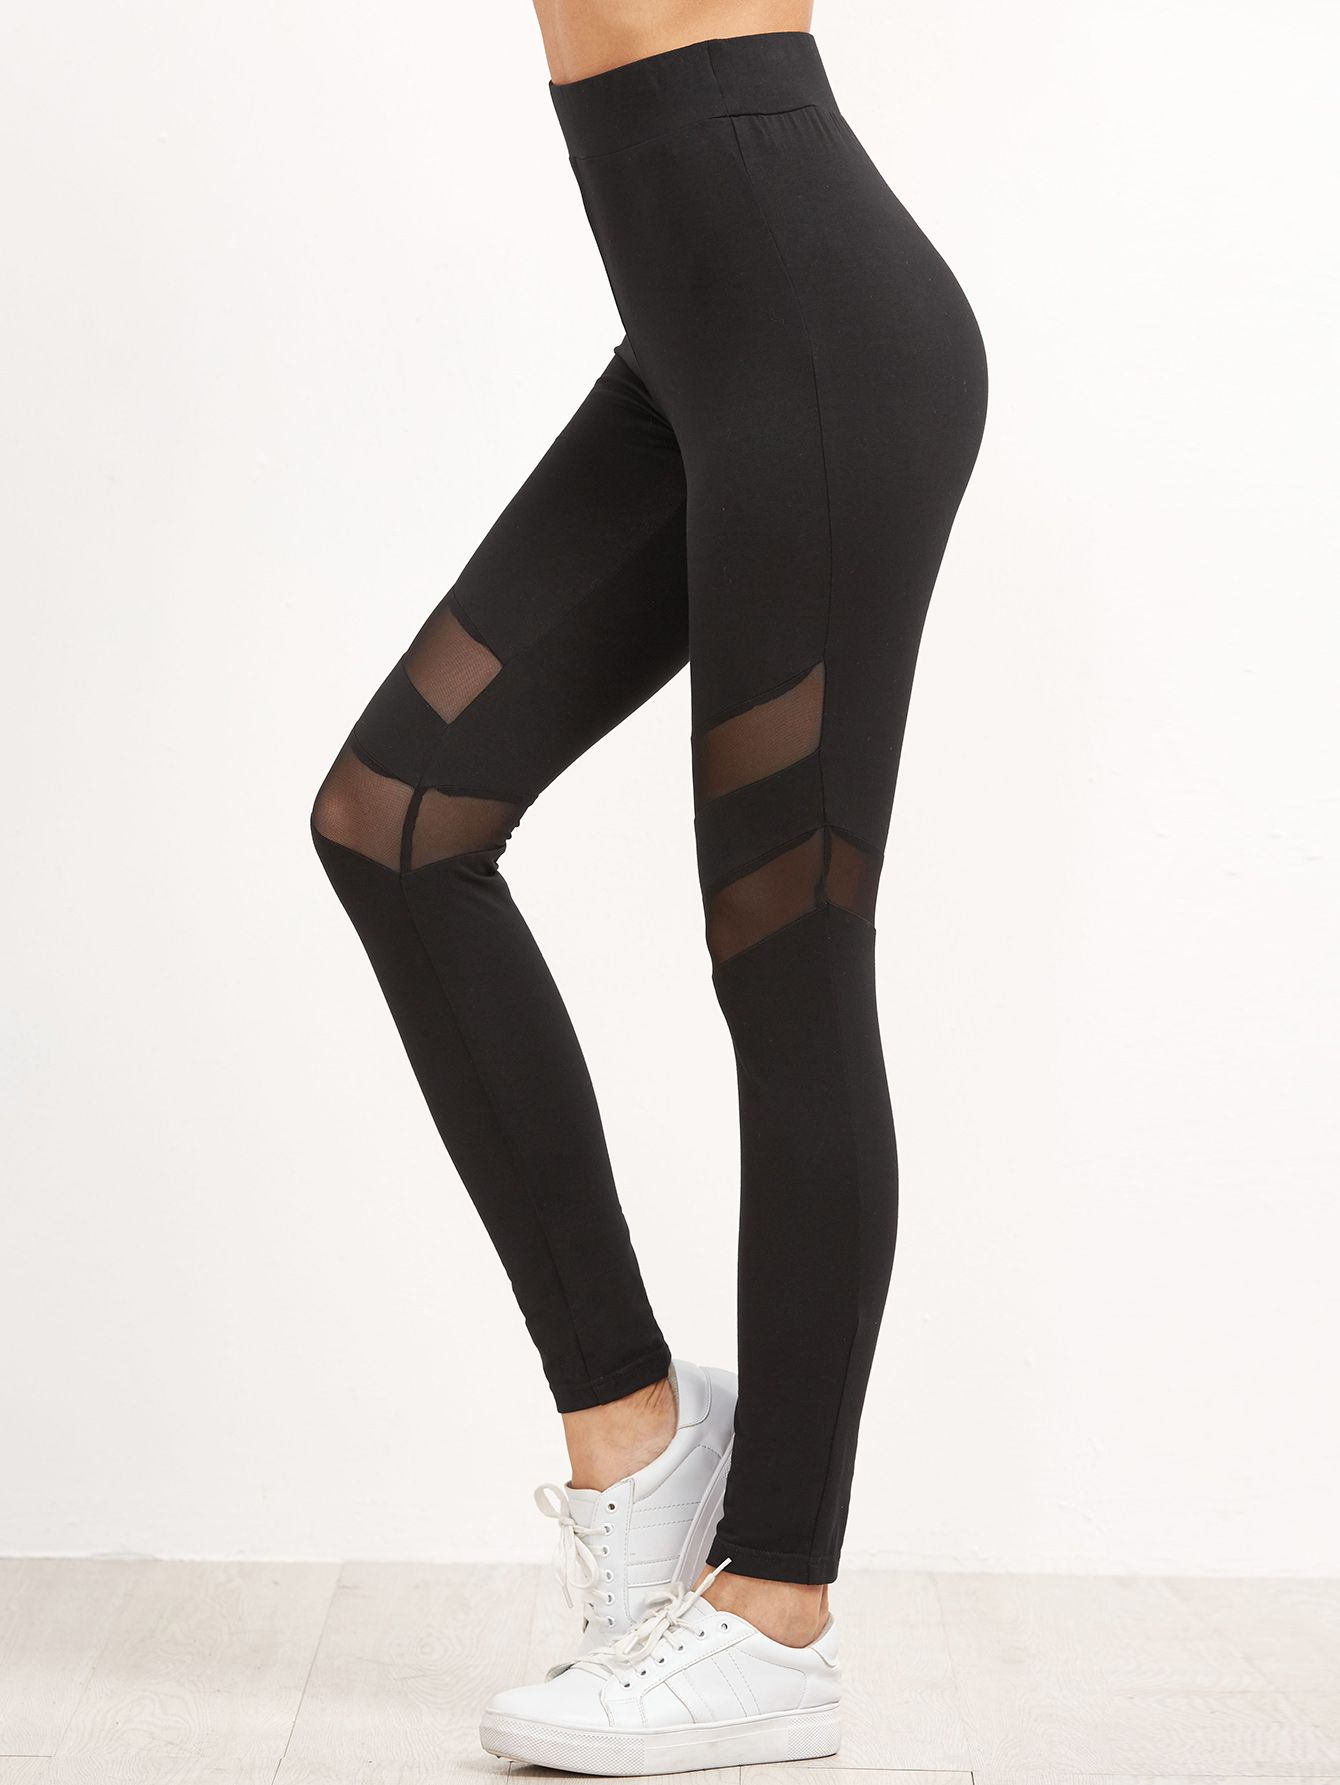 824595ad9a Shop Black High Waist Leggings With Mesh Panel Detail online. SheIn offers  Black High Waist Leggings With Mesh Panel Detail & more to fit your  fashionable ...